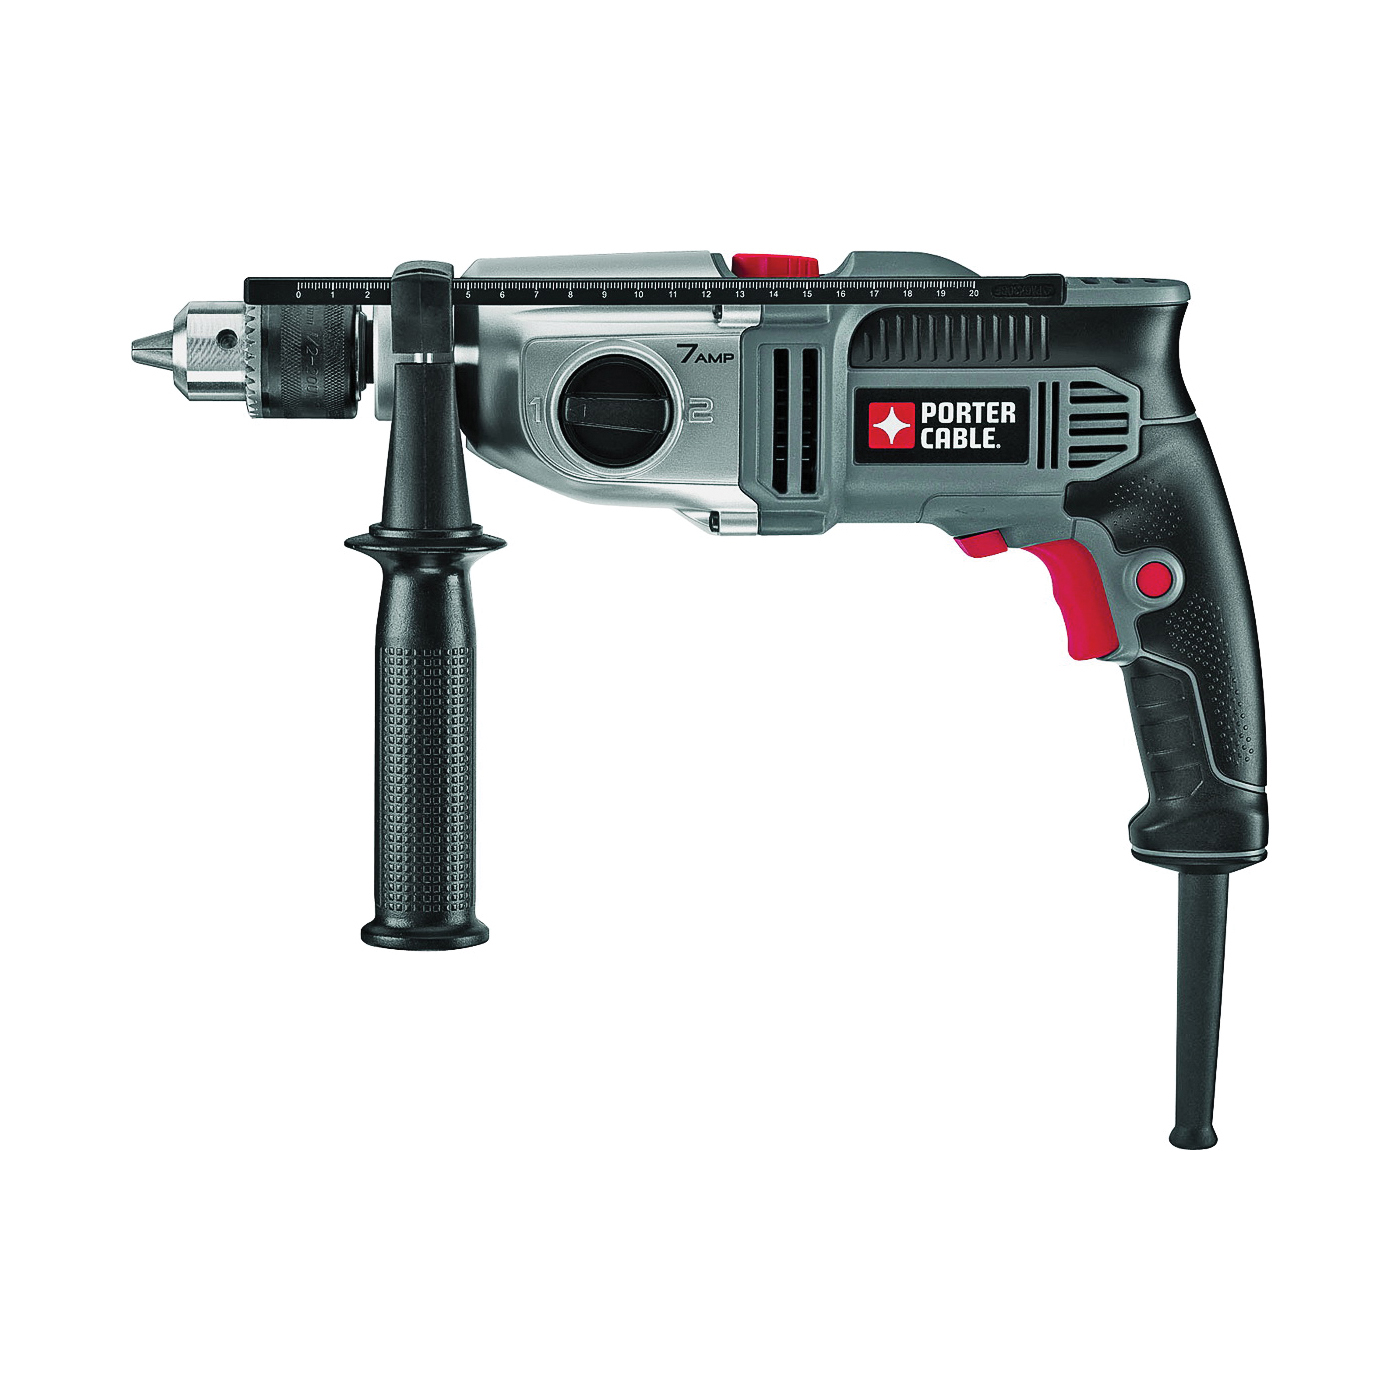 Picture of PORTER-CABLE PC70THD Hammer Drill, 120 V, 7 A, 1/2 in Chuck, Keyless Chuck, 0 to 3100 rpm Speed